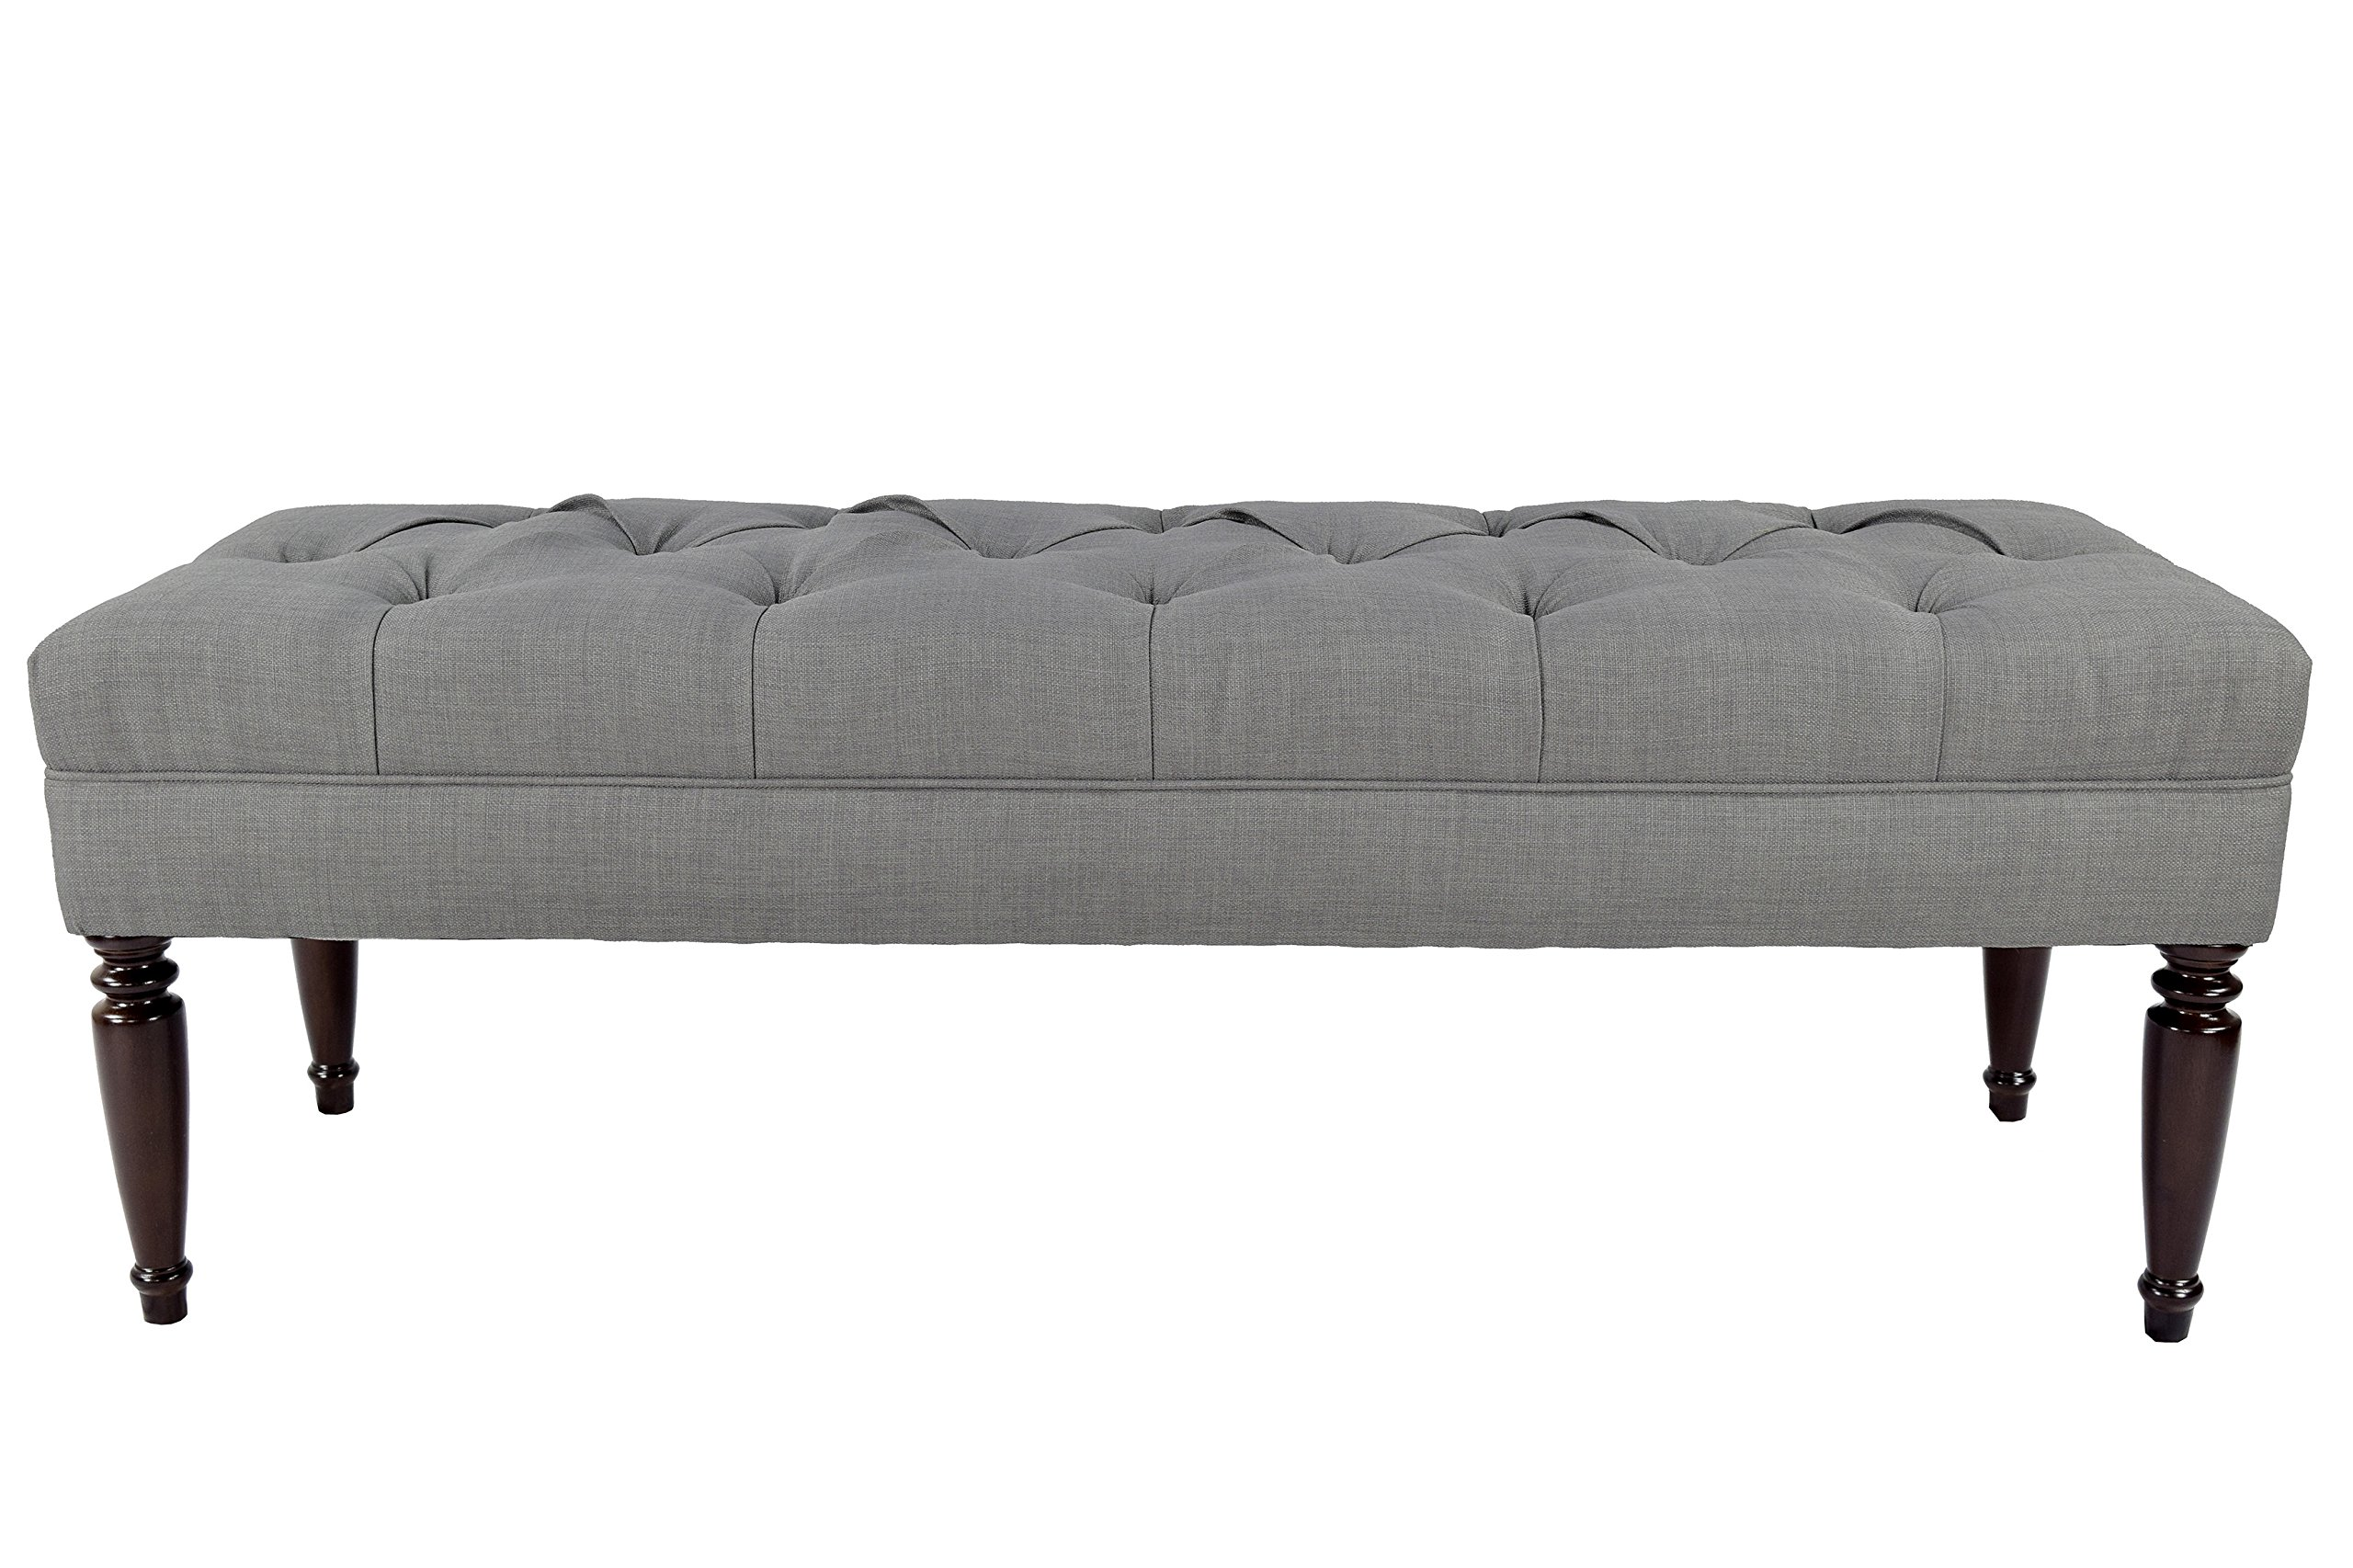 MJL Furniture Designs Claudia Collection Upholstered Diamond Tufted Bedroom Accent Bench, HJM100 Series, Dark Gray